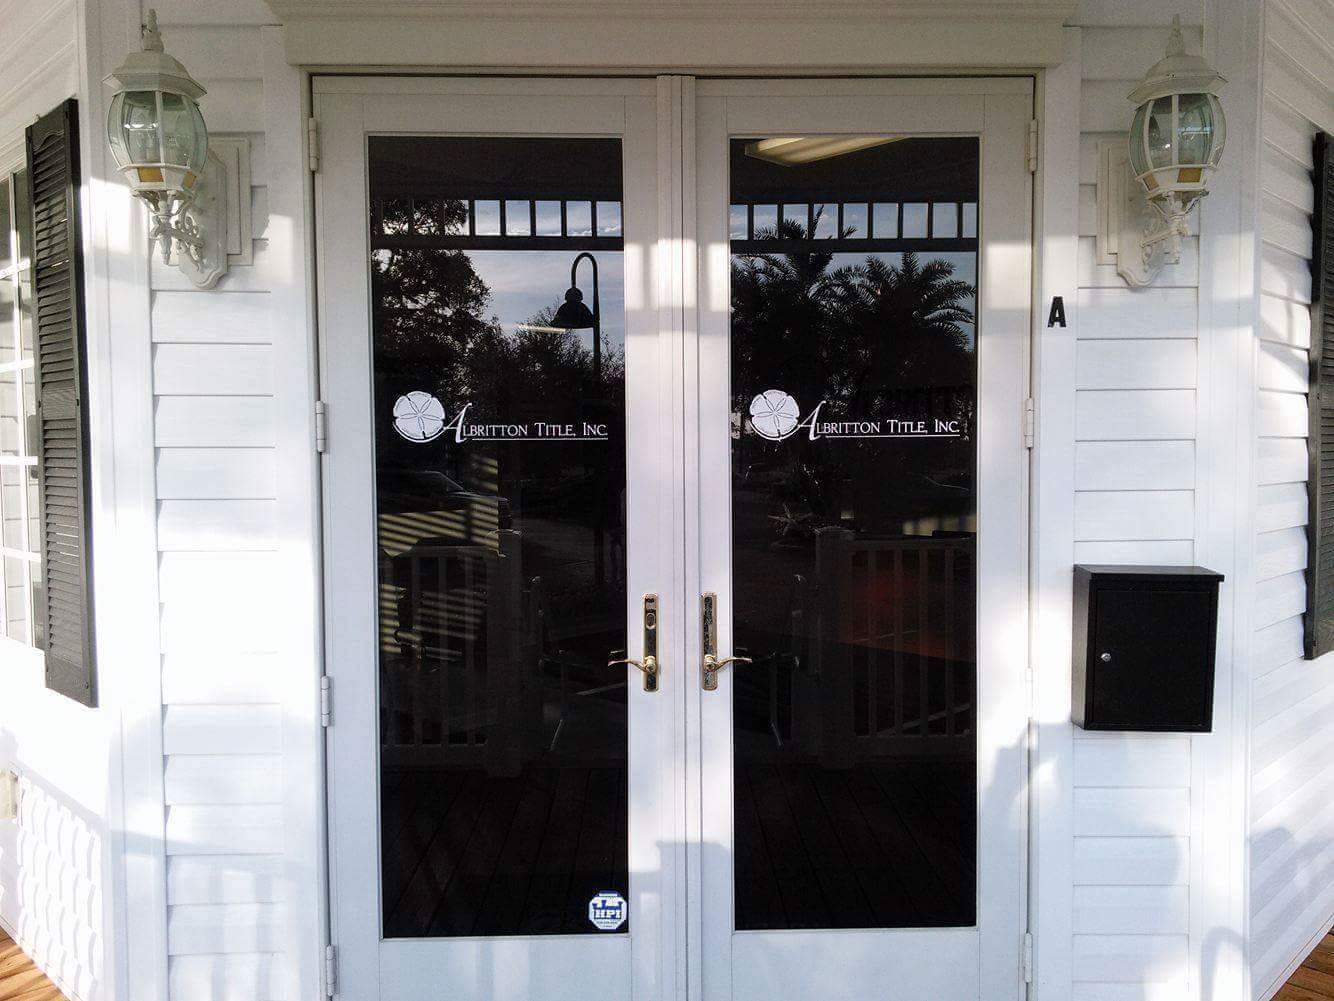 Real Estate Closings and Title Insurance| Entryway of Albritton Title, Inc in Palm Harbor